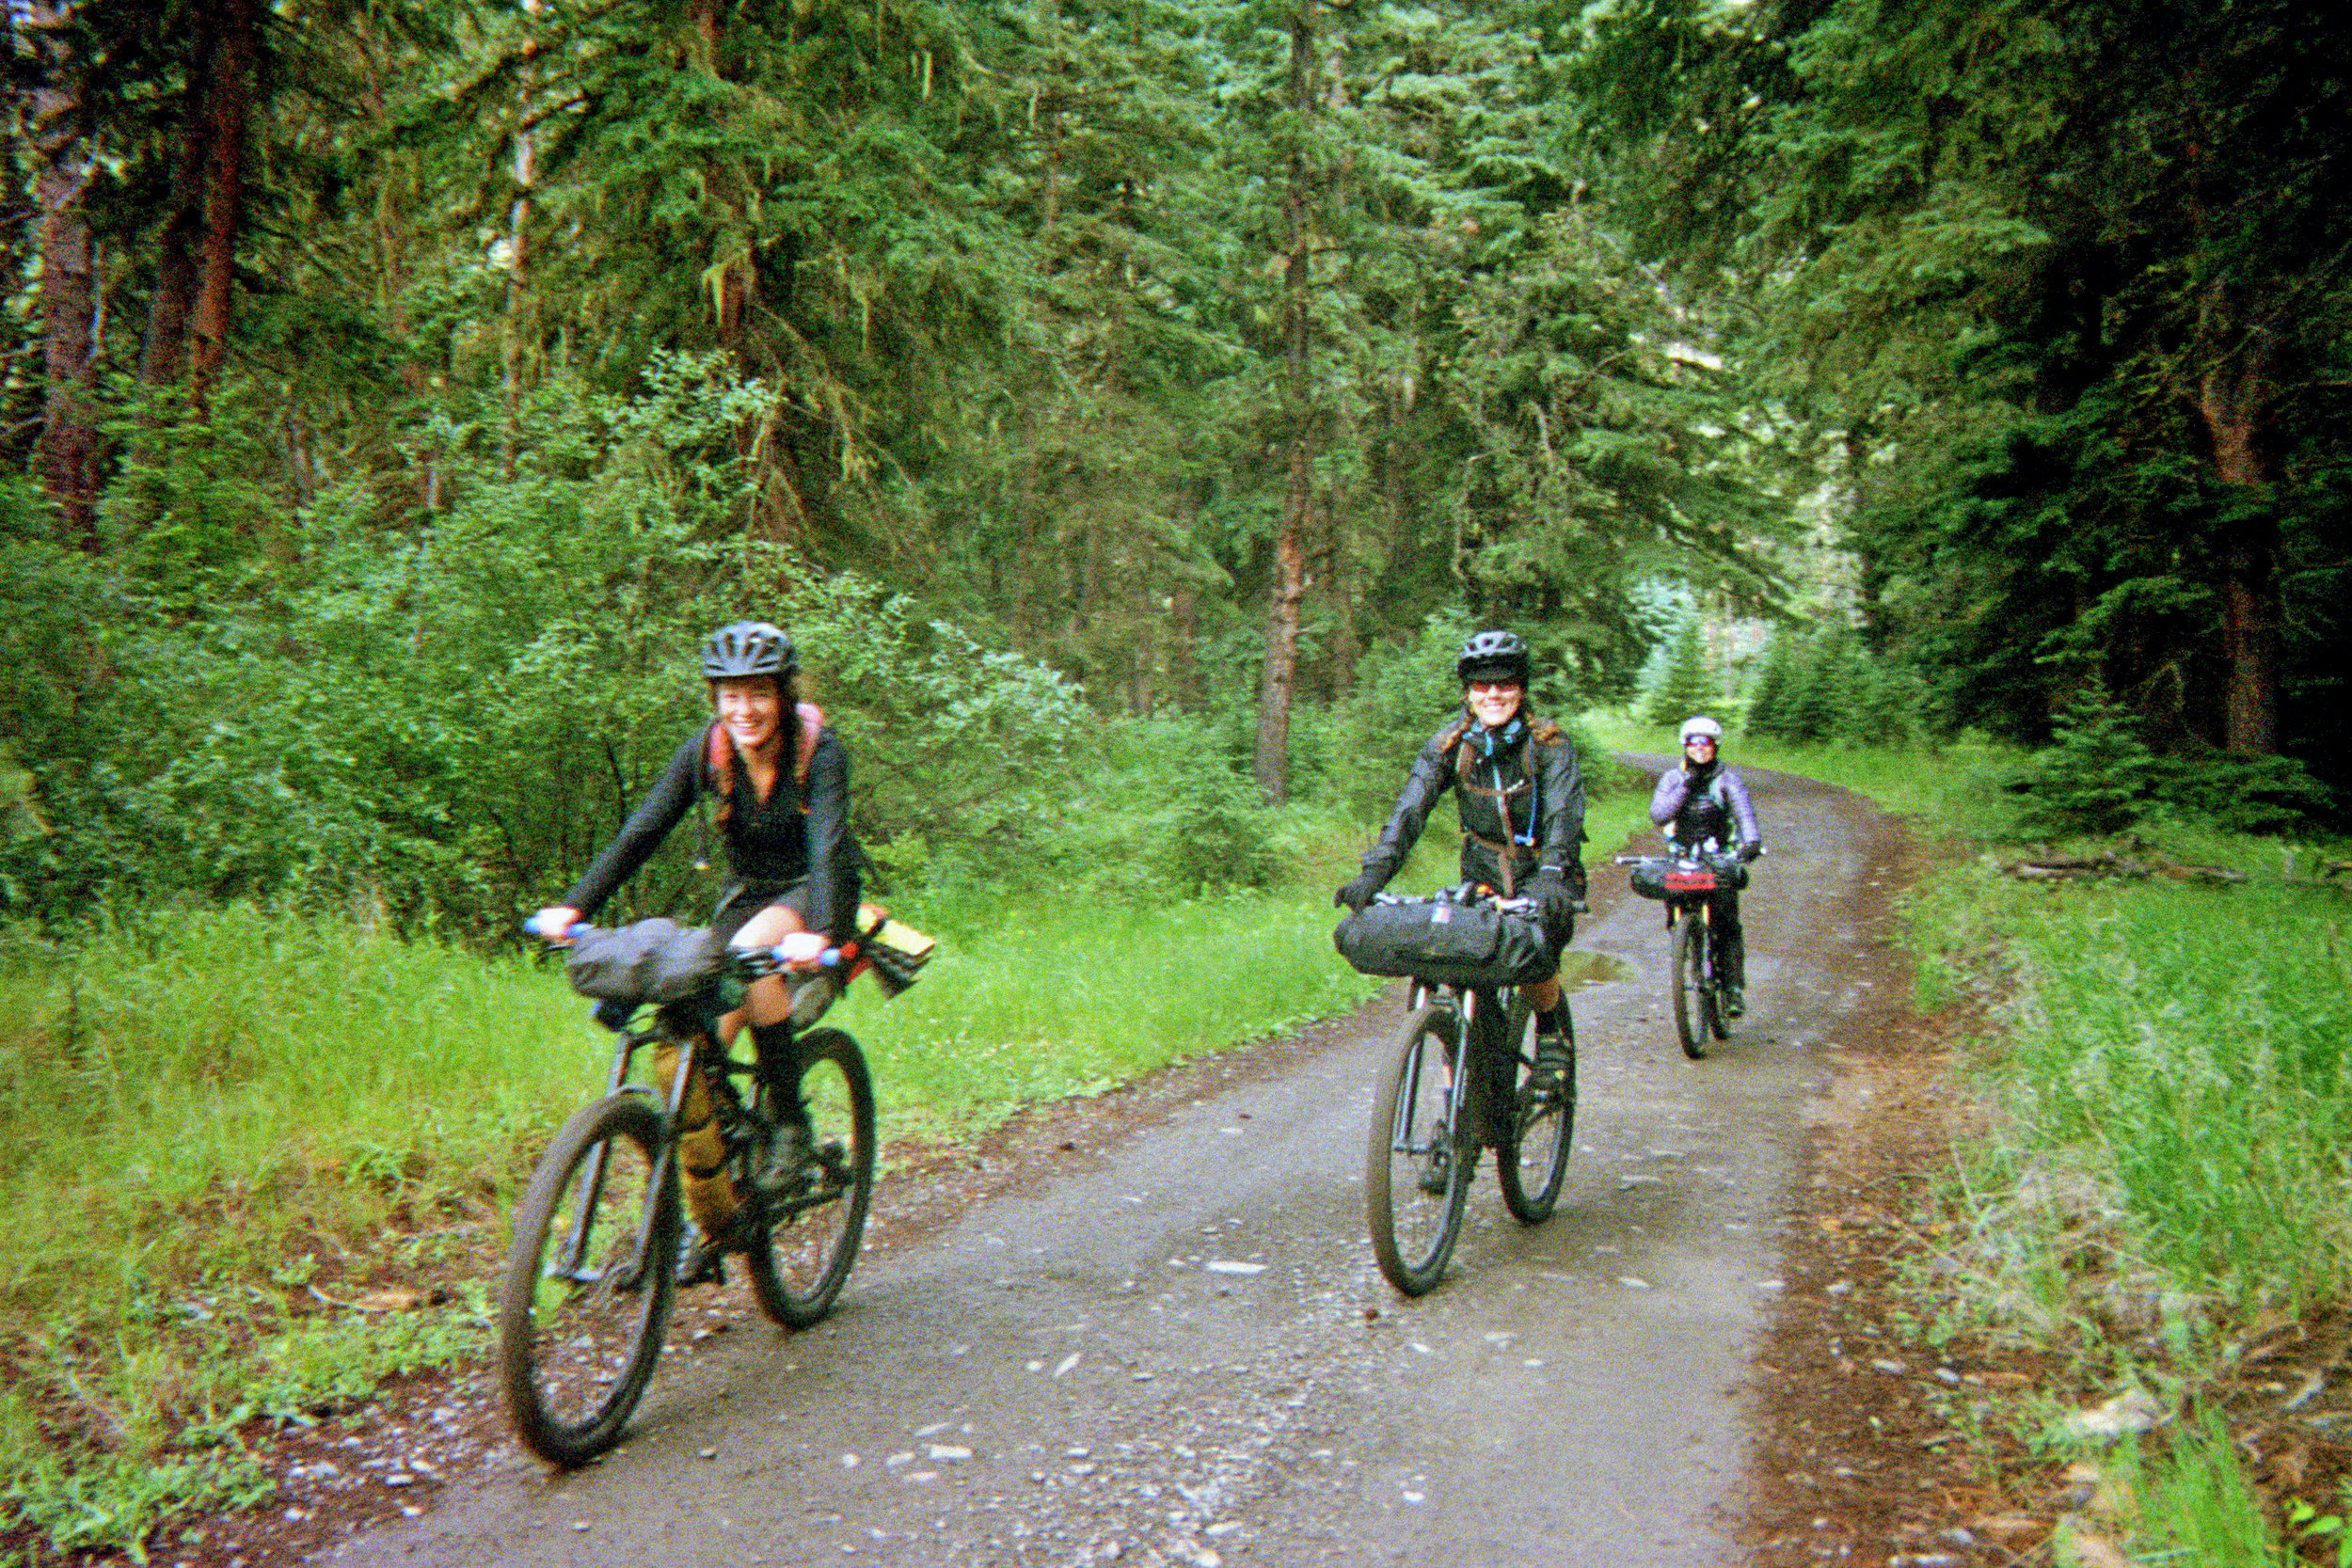 Michelle, Kristi and Heather (left to right) starting out the day on some tacky, sometimes muddy, Mikelson trail.